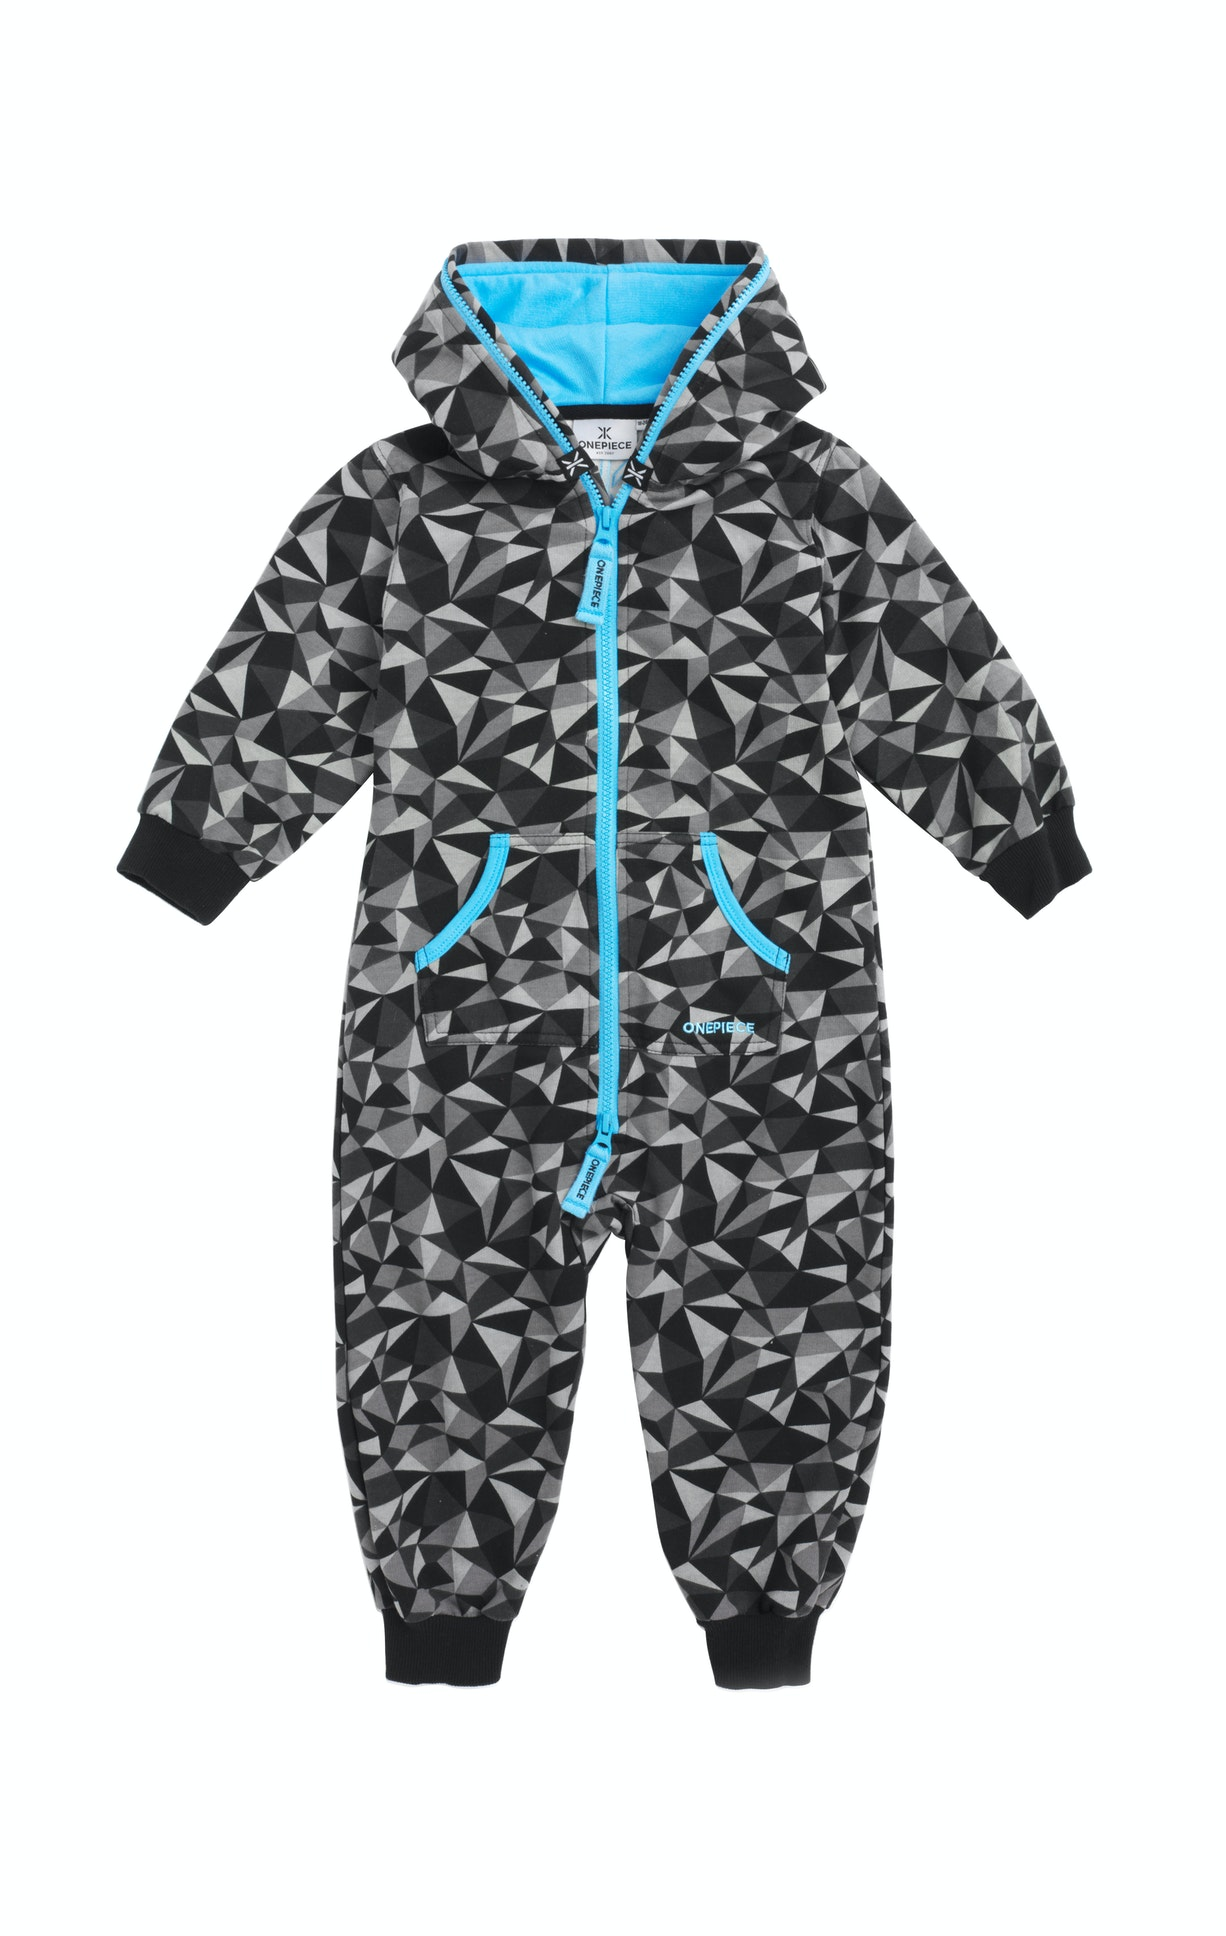 Prismatic Baby Jumpsuit Black A mini version of the Original Onepiece, scaled down and adapted to fit your toddler. Match your mini-me up with yourself in this super soft onesie for the most fab snuggle look ever.